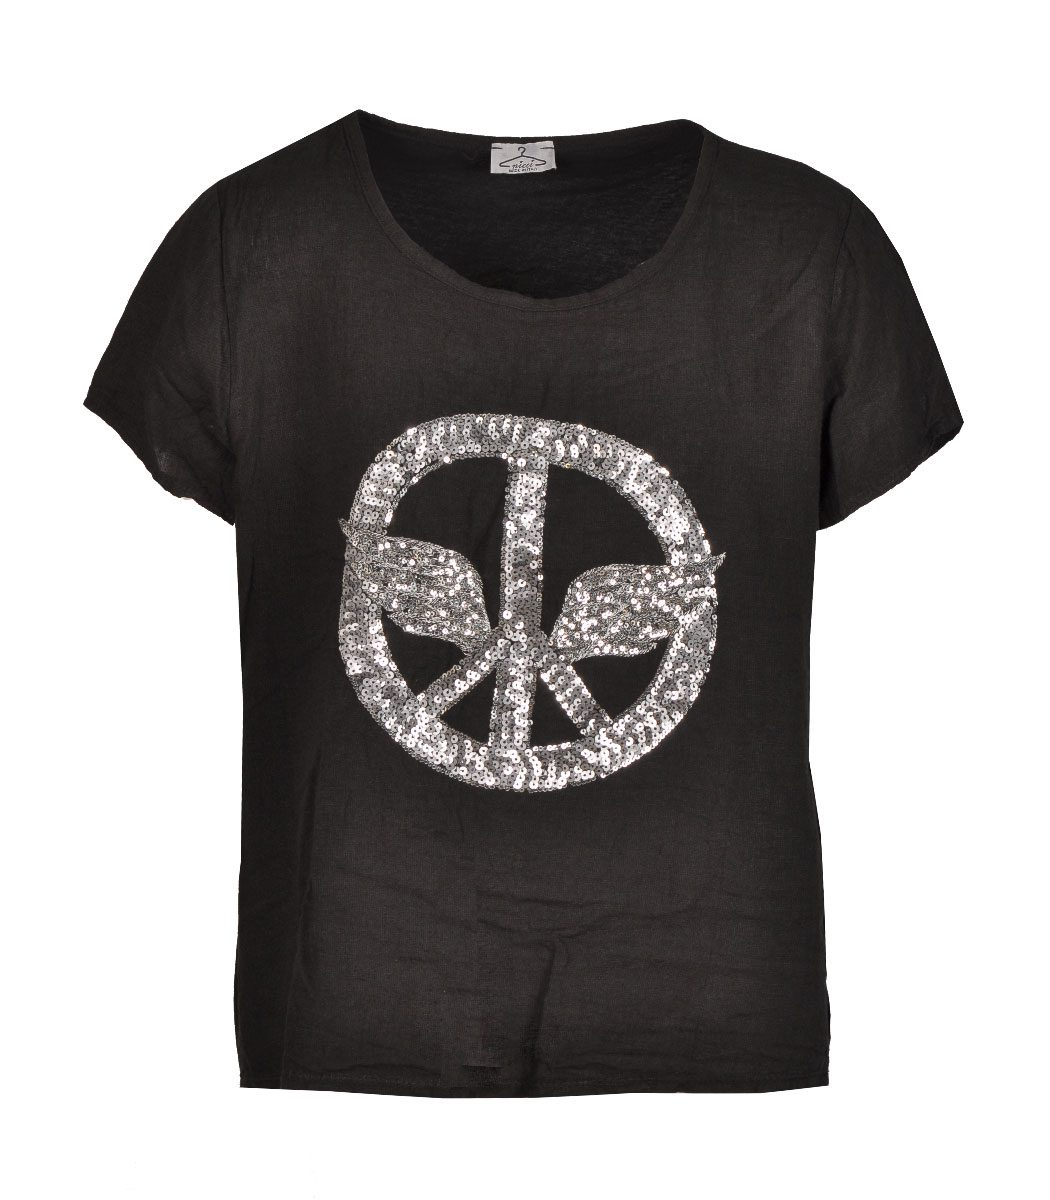 Sequin peace wings top